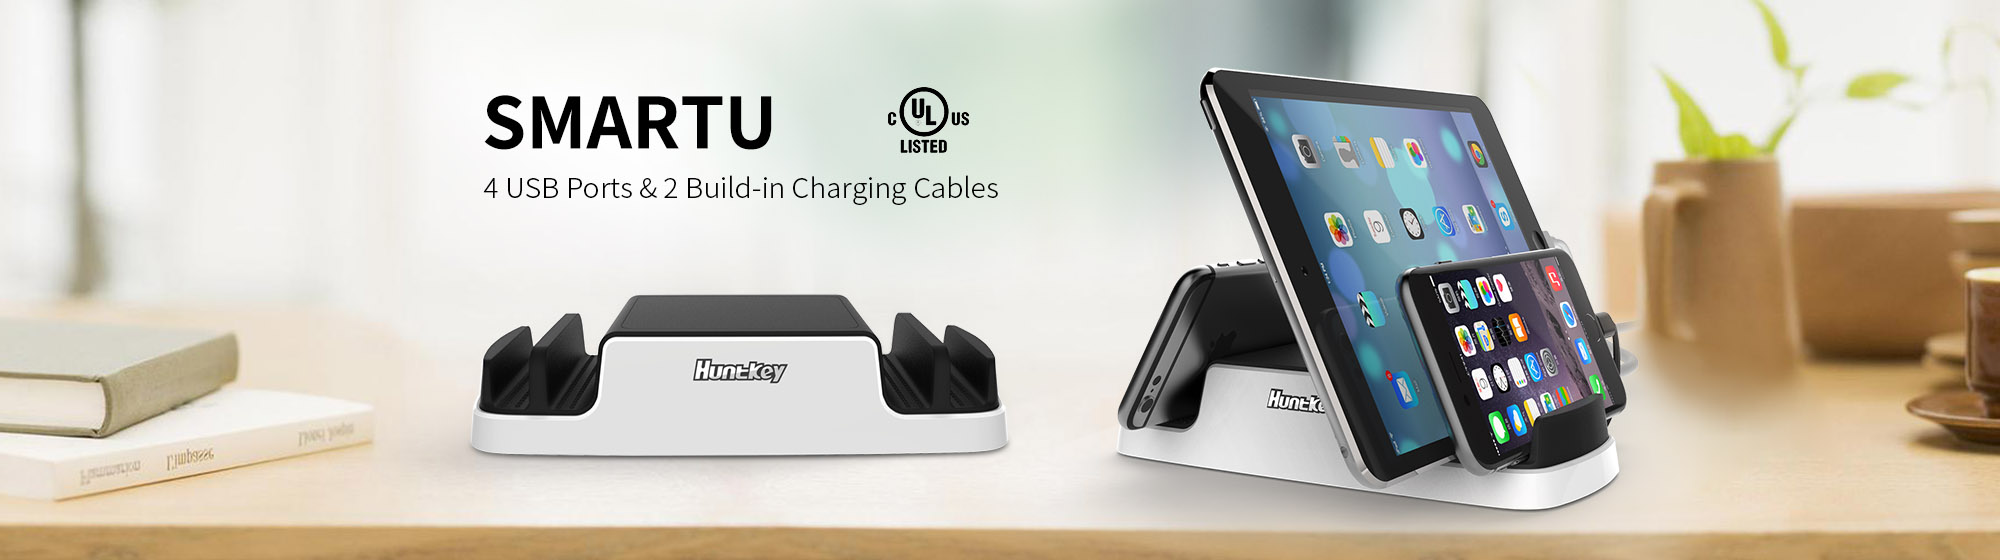 SmartU SMART USB CHARGING STATION SUPPLIERS